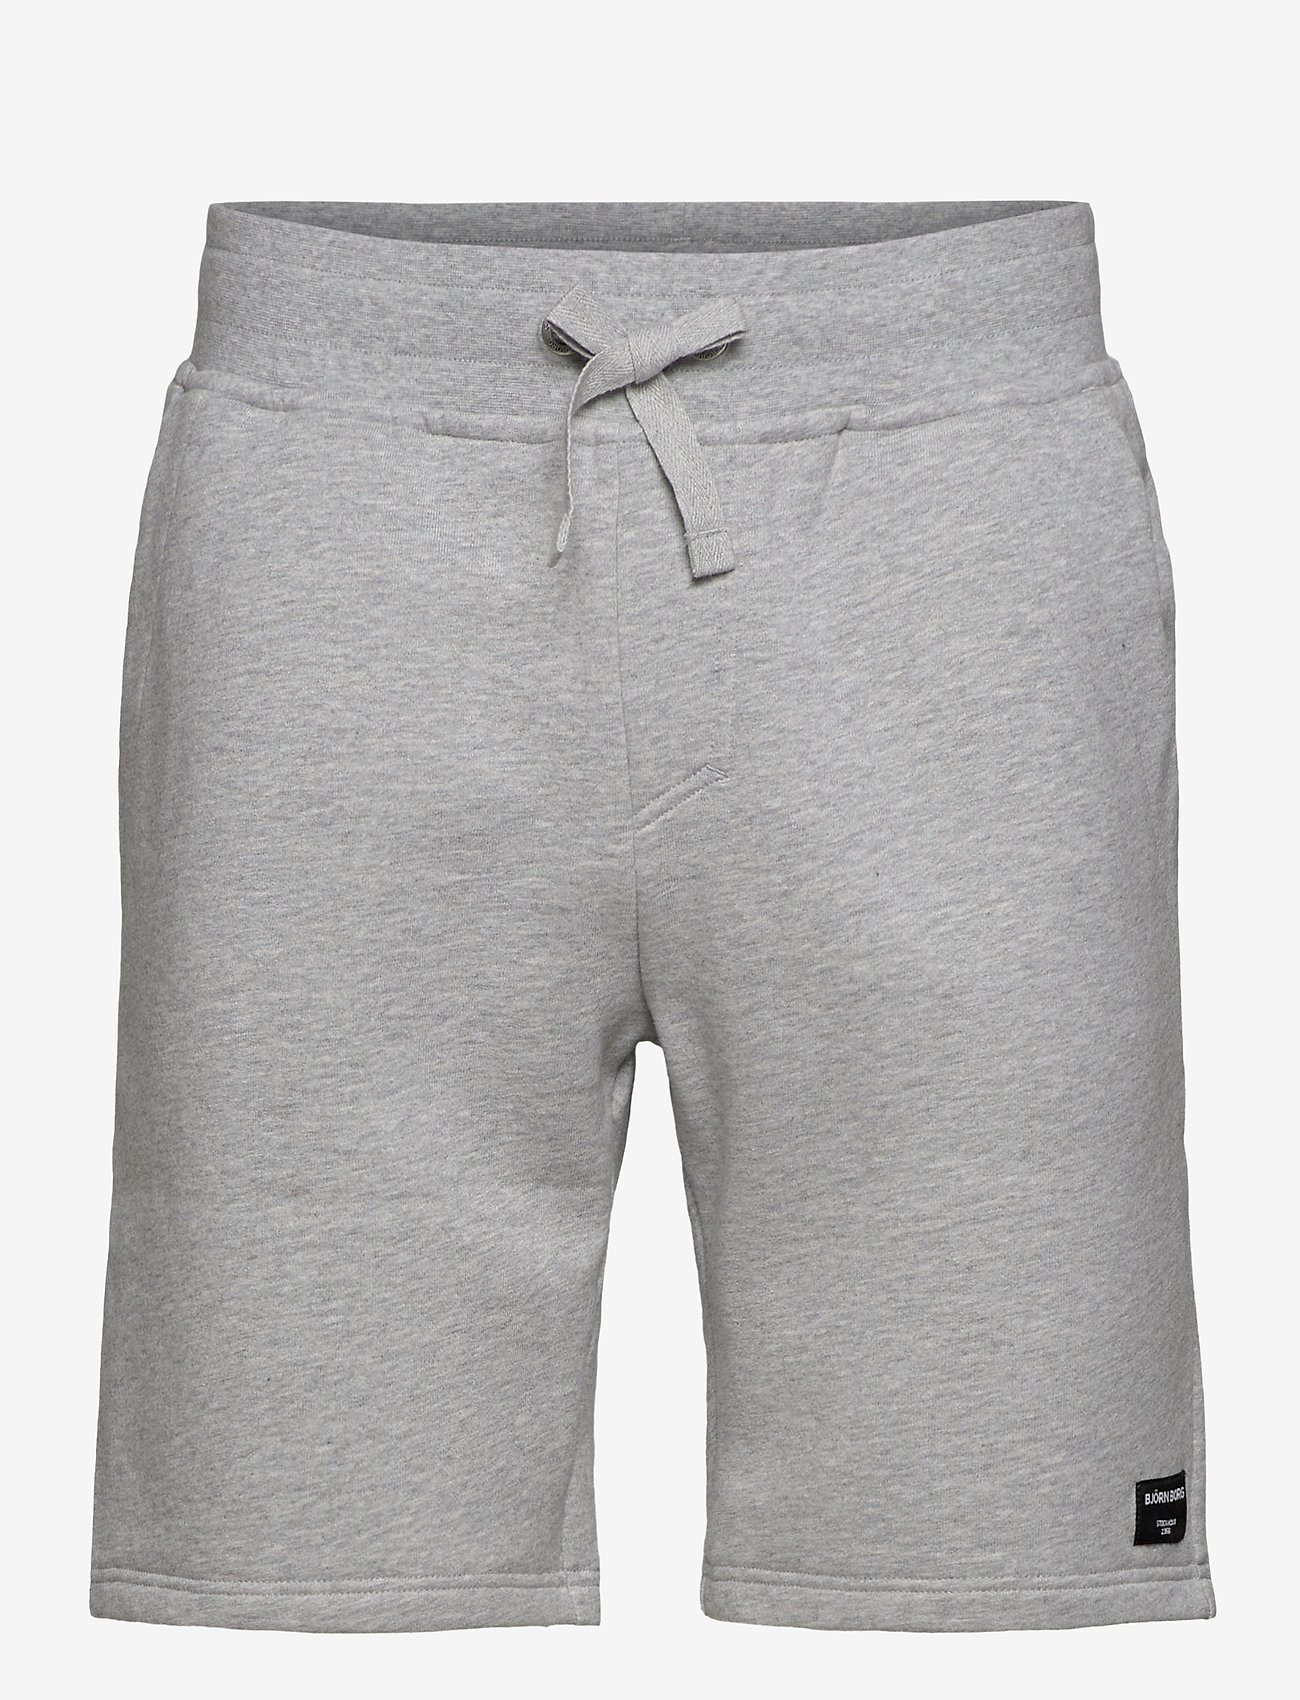 Björn Borg - SHORTS CENTRE CENTRE - casual shorts - h108by light grey melange - 0